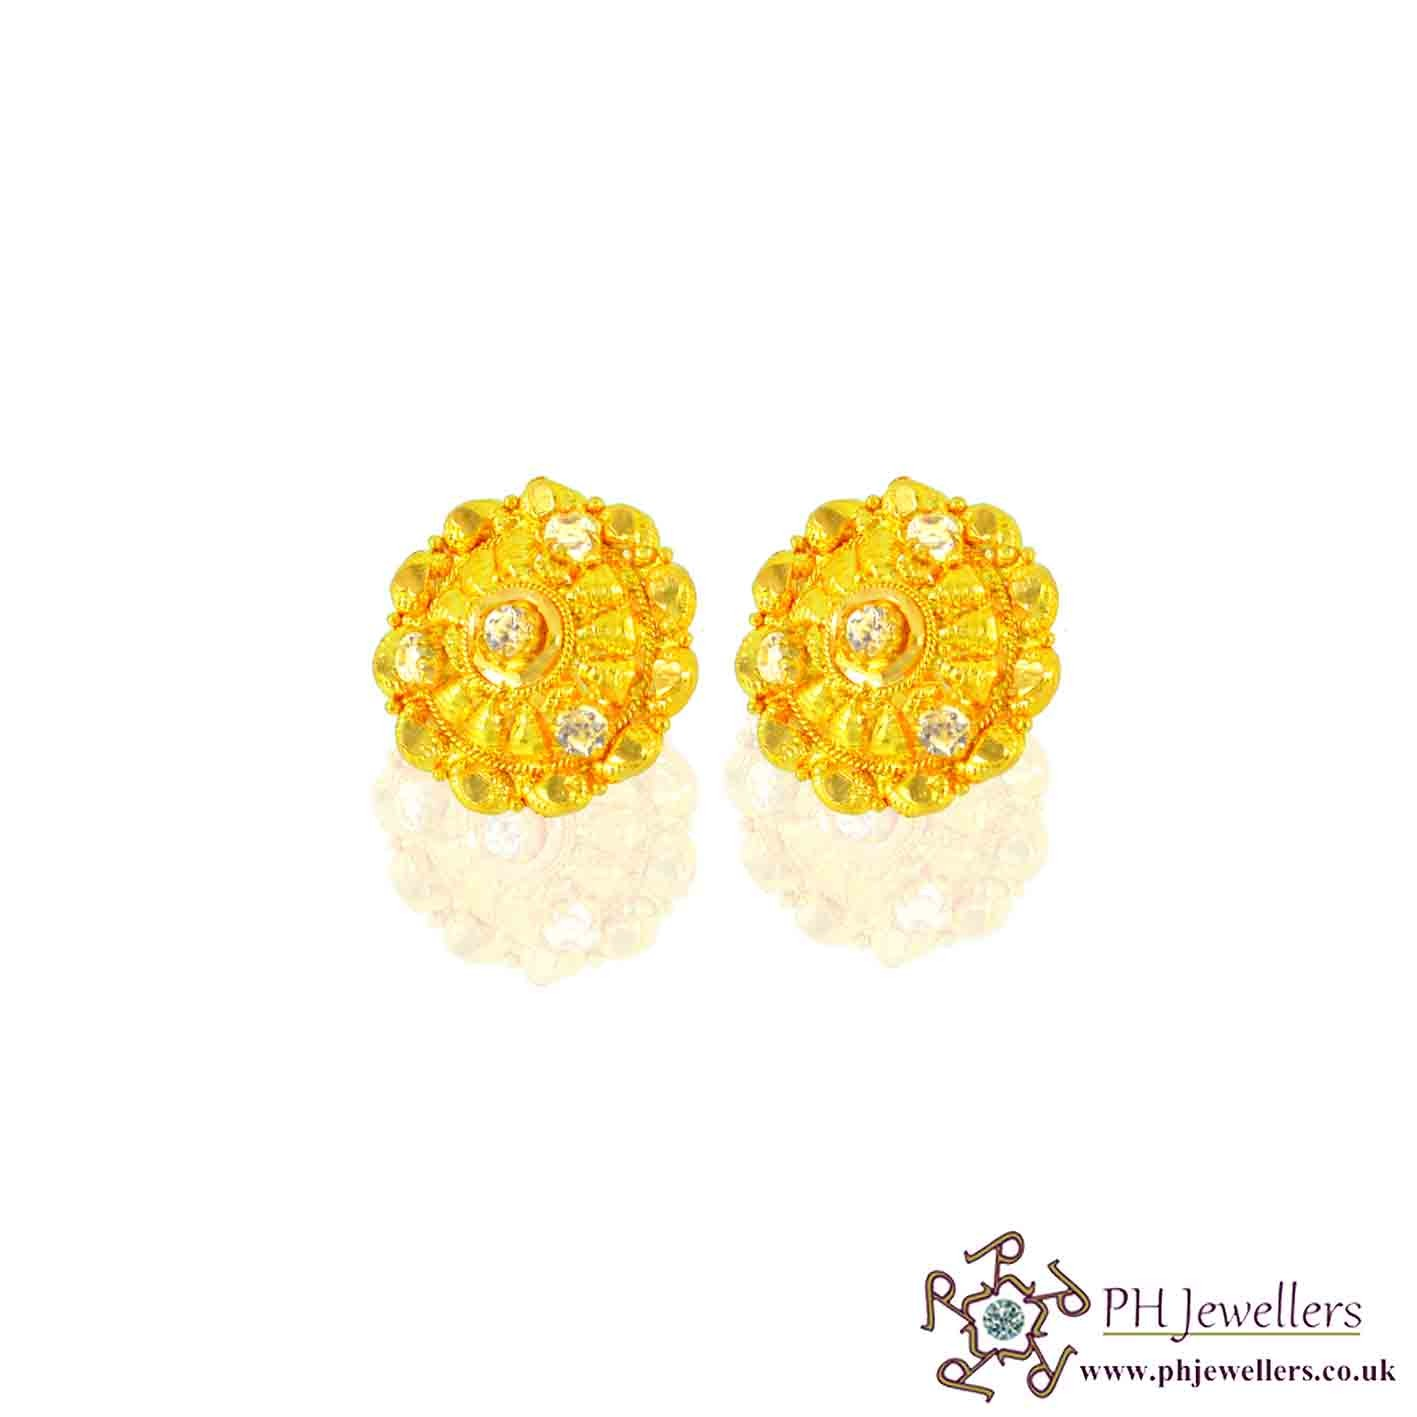 22CT 916 Hallmark Yellow Gold Tops Earring CZ TE17